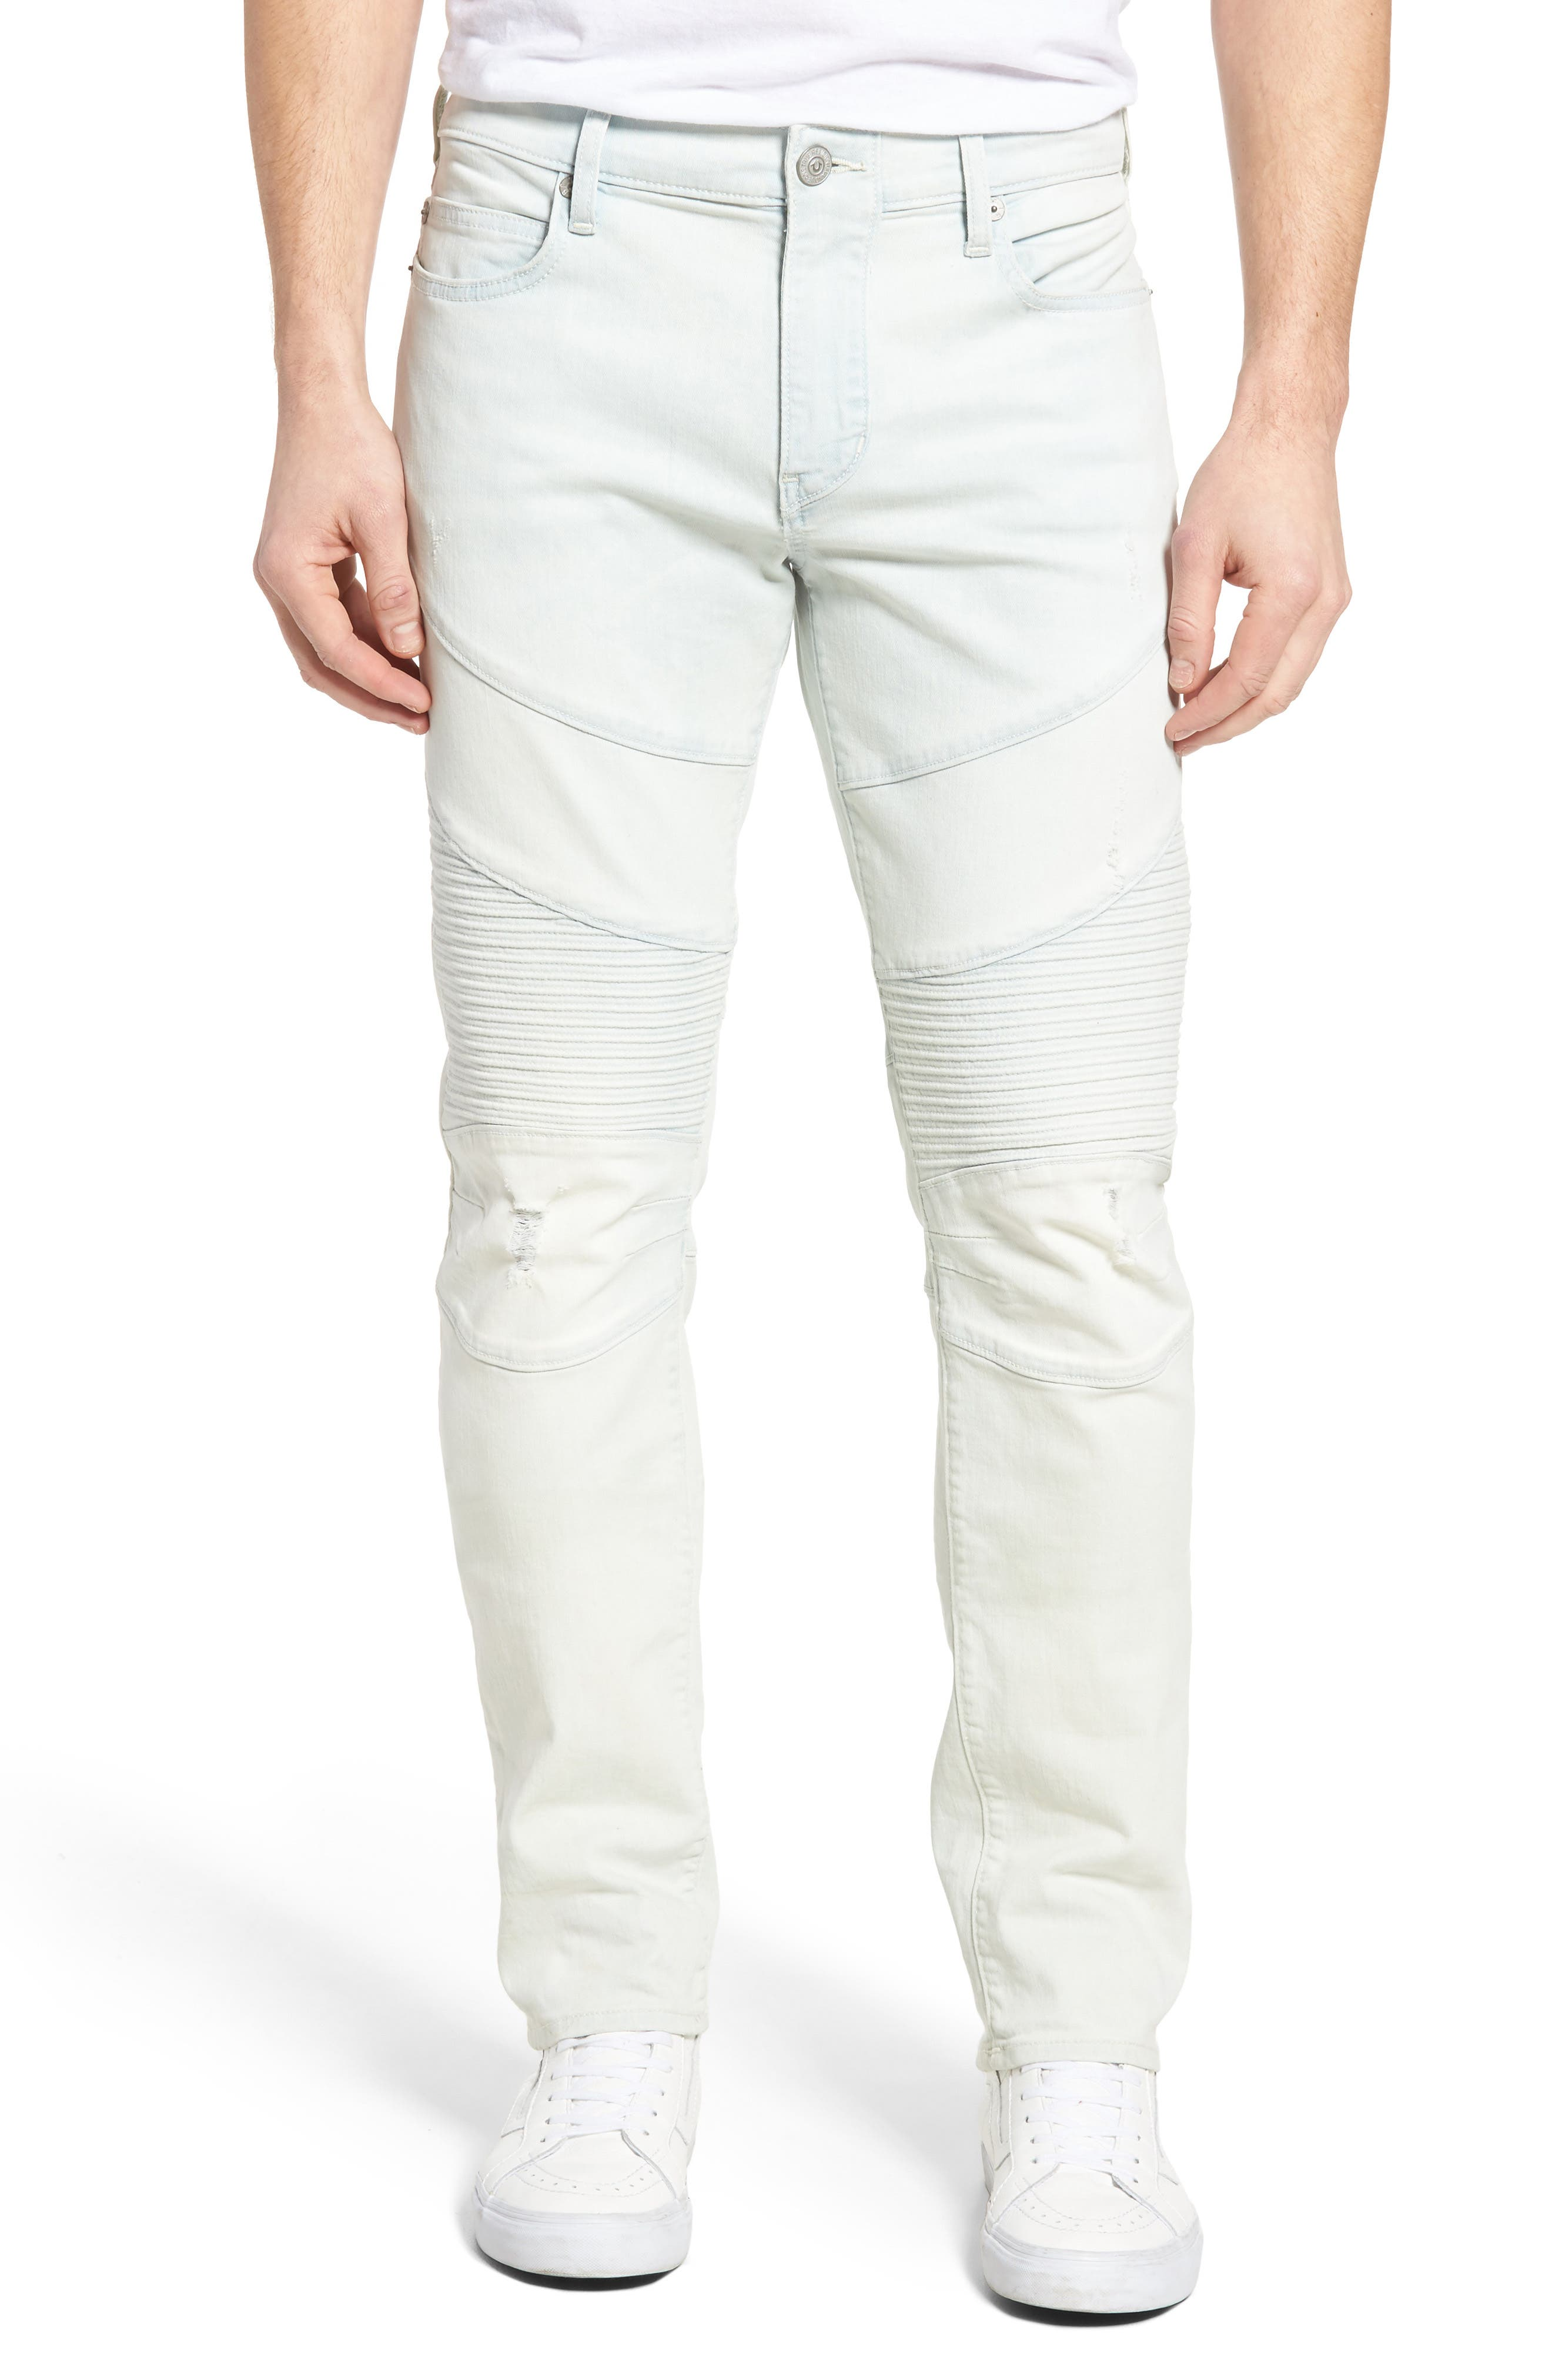 Rocco Skinny Fit Moto Jeans,                         Main,                         color, Light Daze